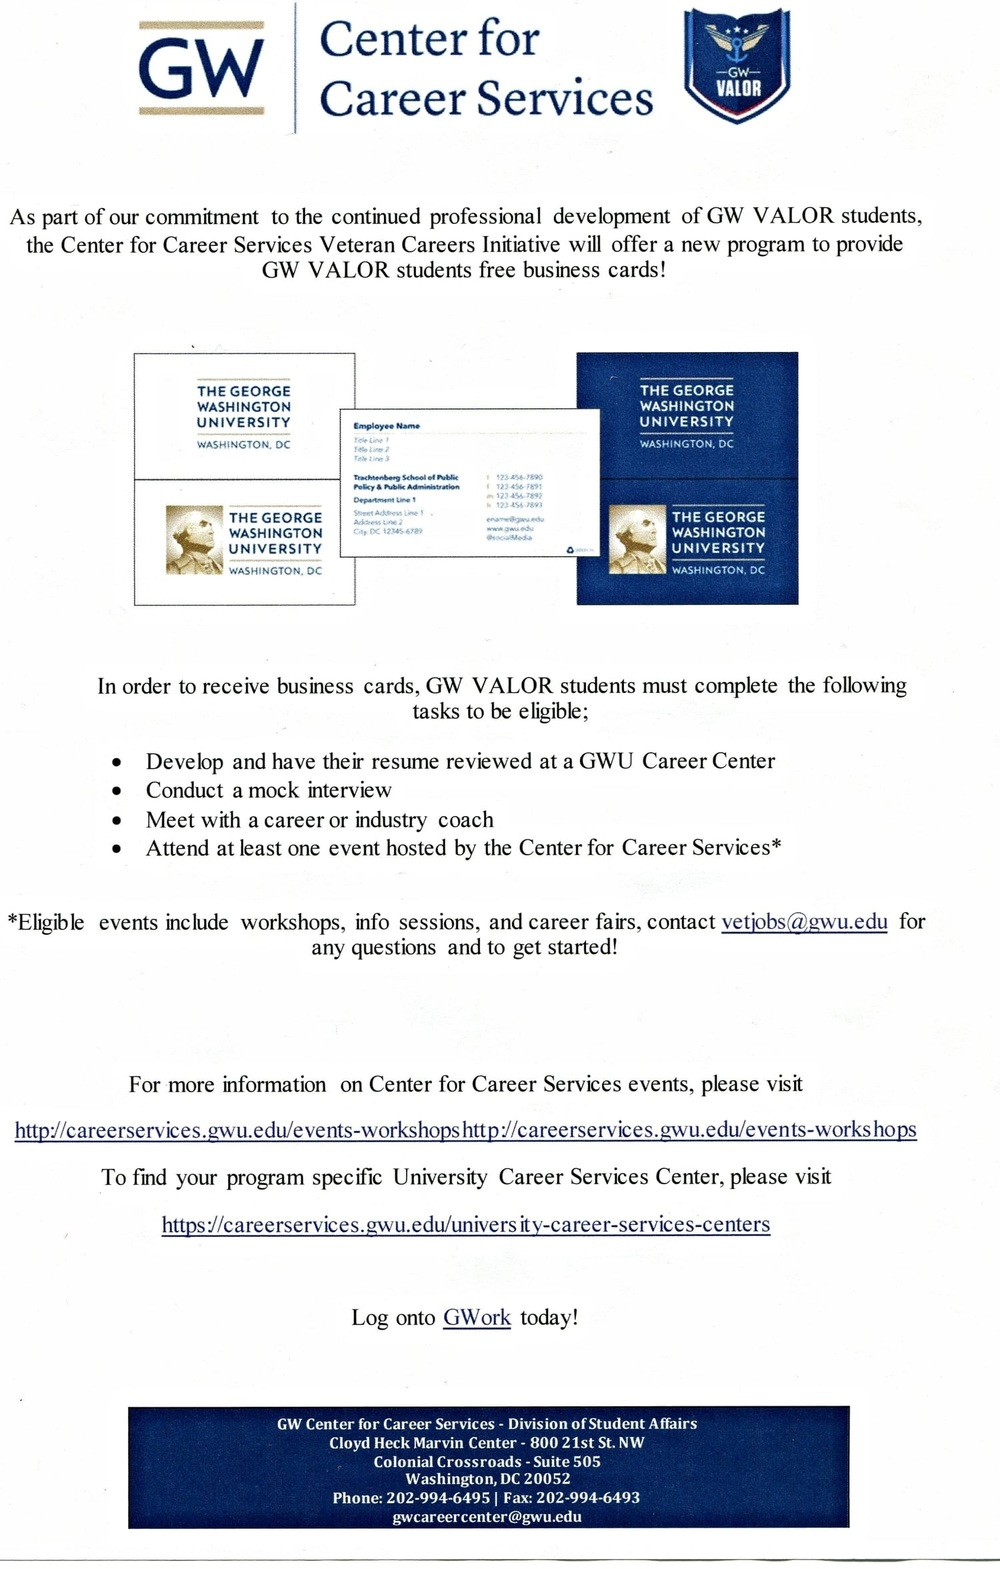 Free Business Cards For VALOR Students  George Washington Resume